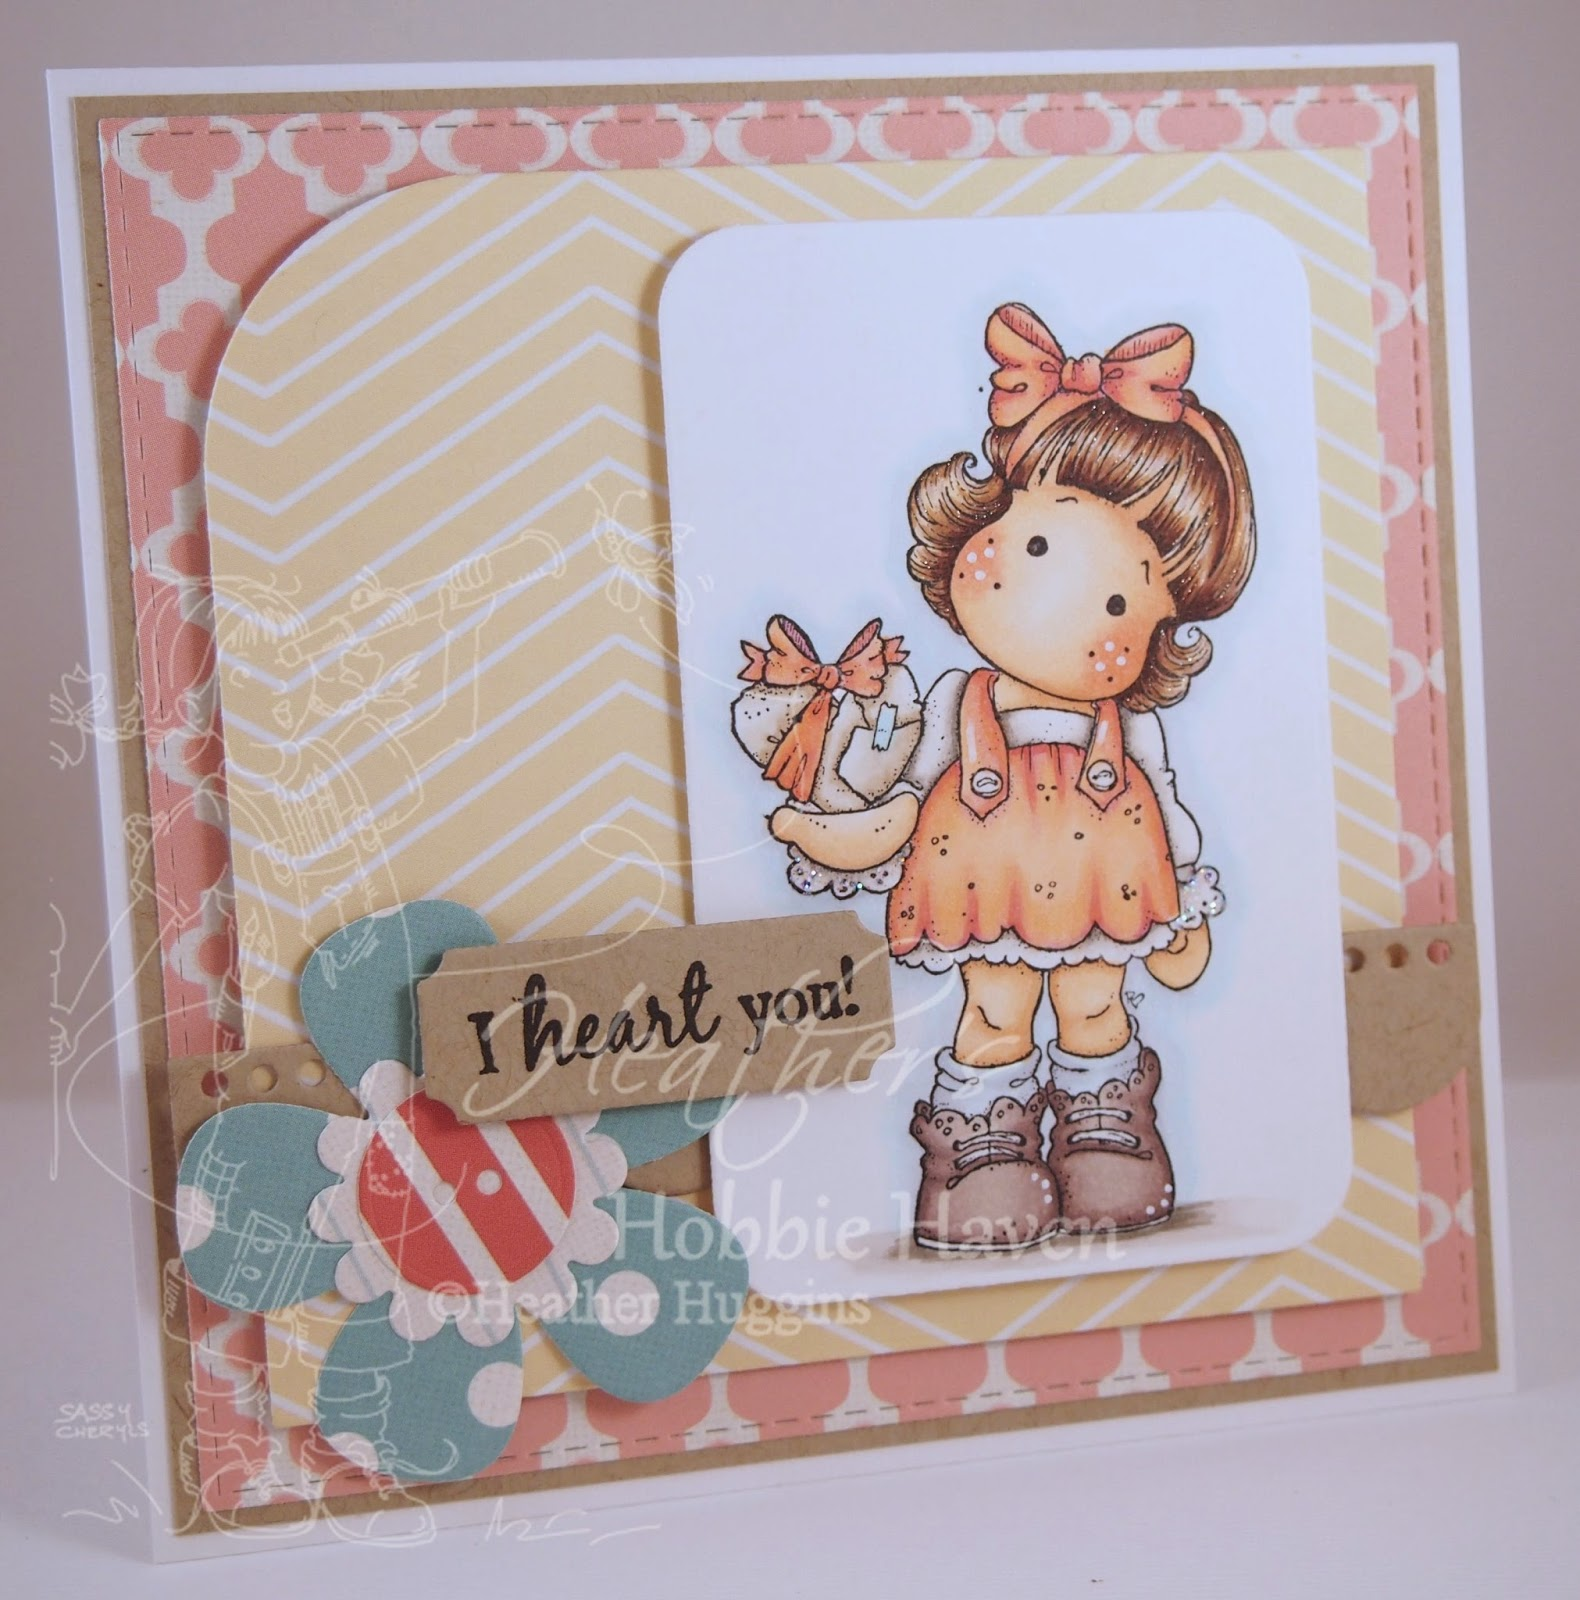 Heather's Hobbie Haven - Tilda with Wrapped Heart Card Kit